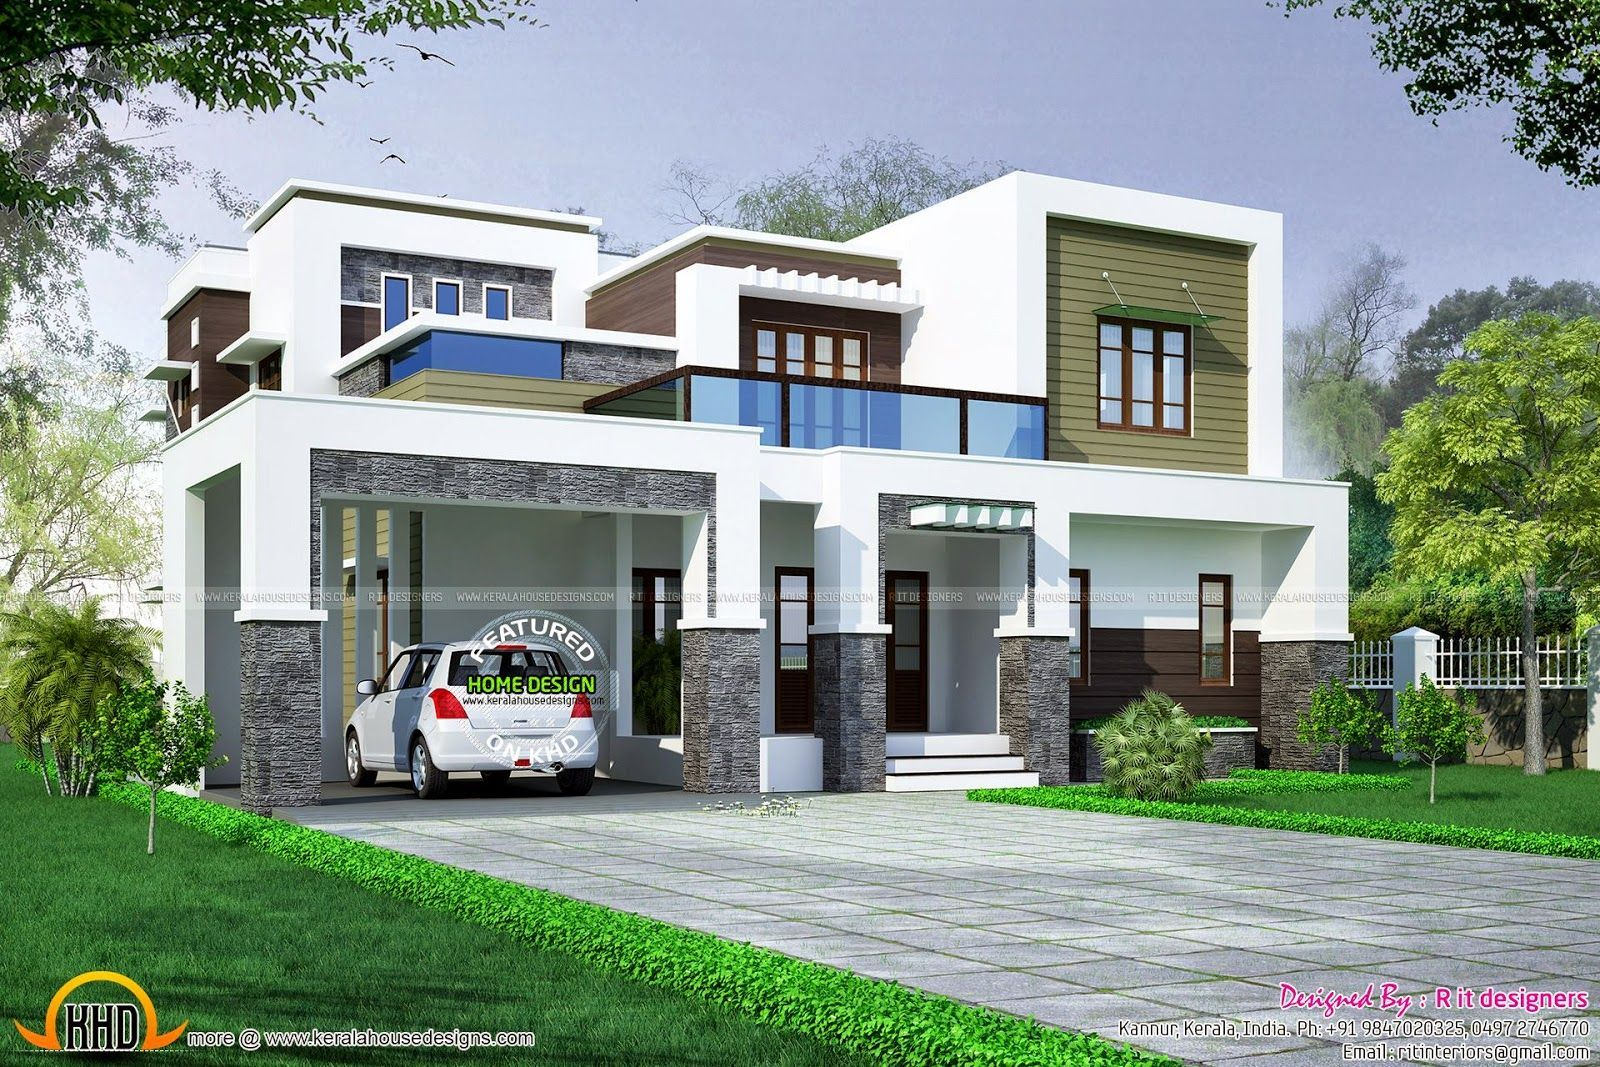 4 bedroom attached modern luxury house. Total area of this house is on home exteriors, home tiny house, home layout, home interior, home plan, home furniture, home front, home color schemes, home blueprints, home renovation, home row, home building, home style, home wallpaper, home ideas, home decor, home symbol, home builders, home drawing, home painting,